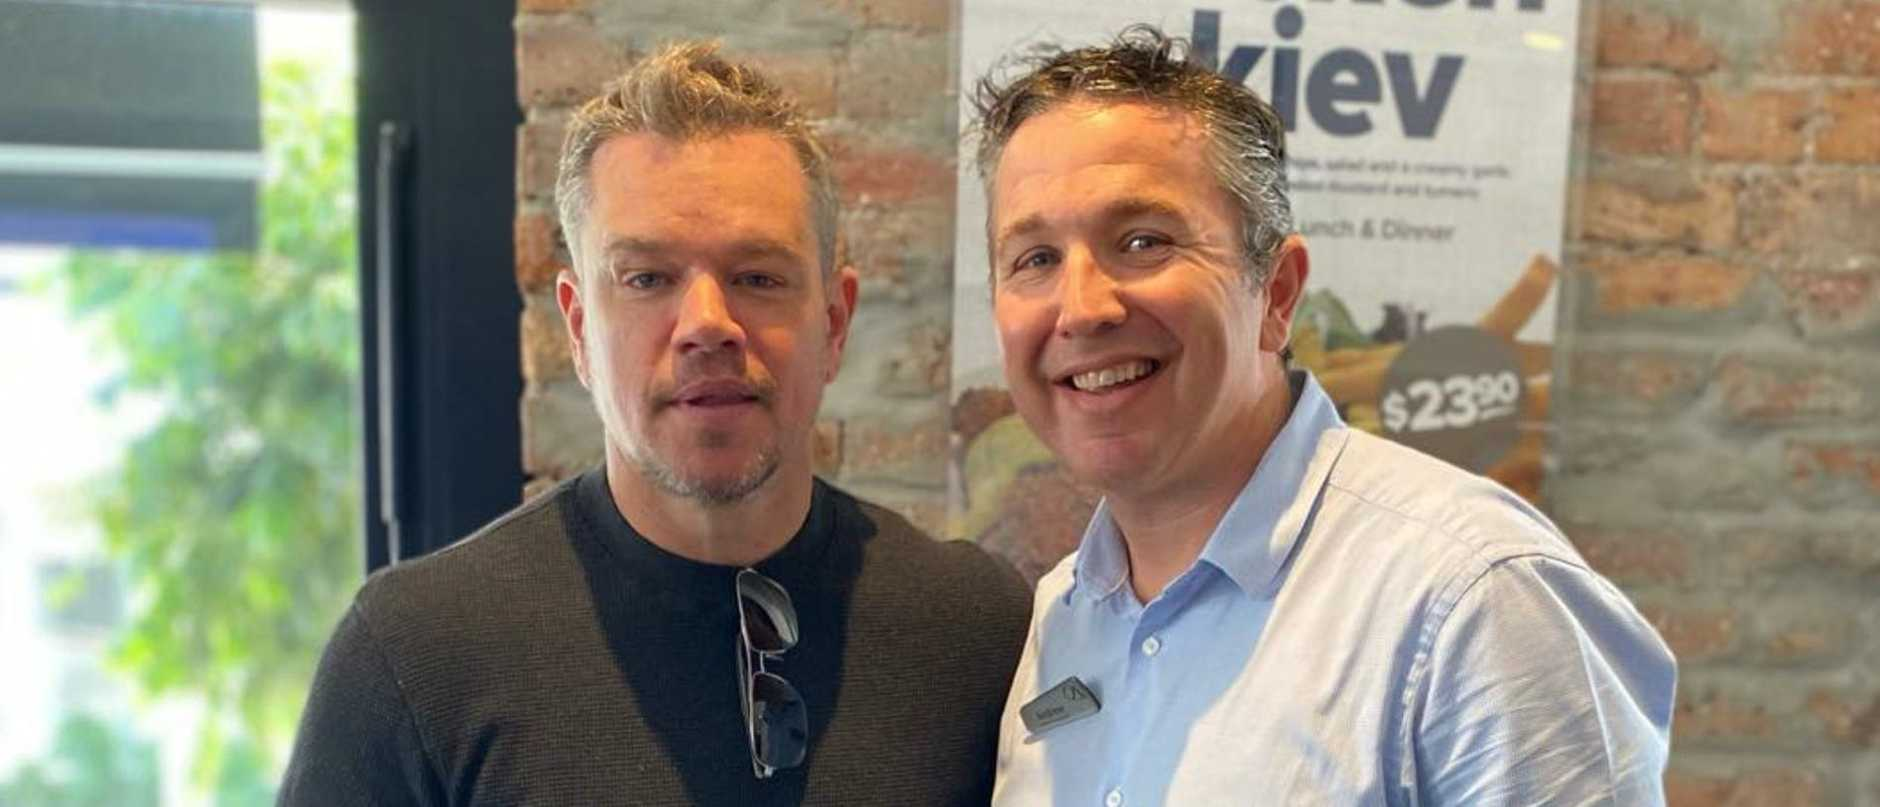 Before attending a charity lunch, Hollywood star Matt Damon dropped into an iconic Brisbane pub for a punt and a Great Northern at 10am.